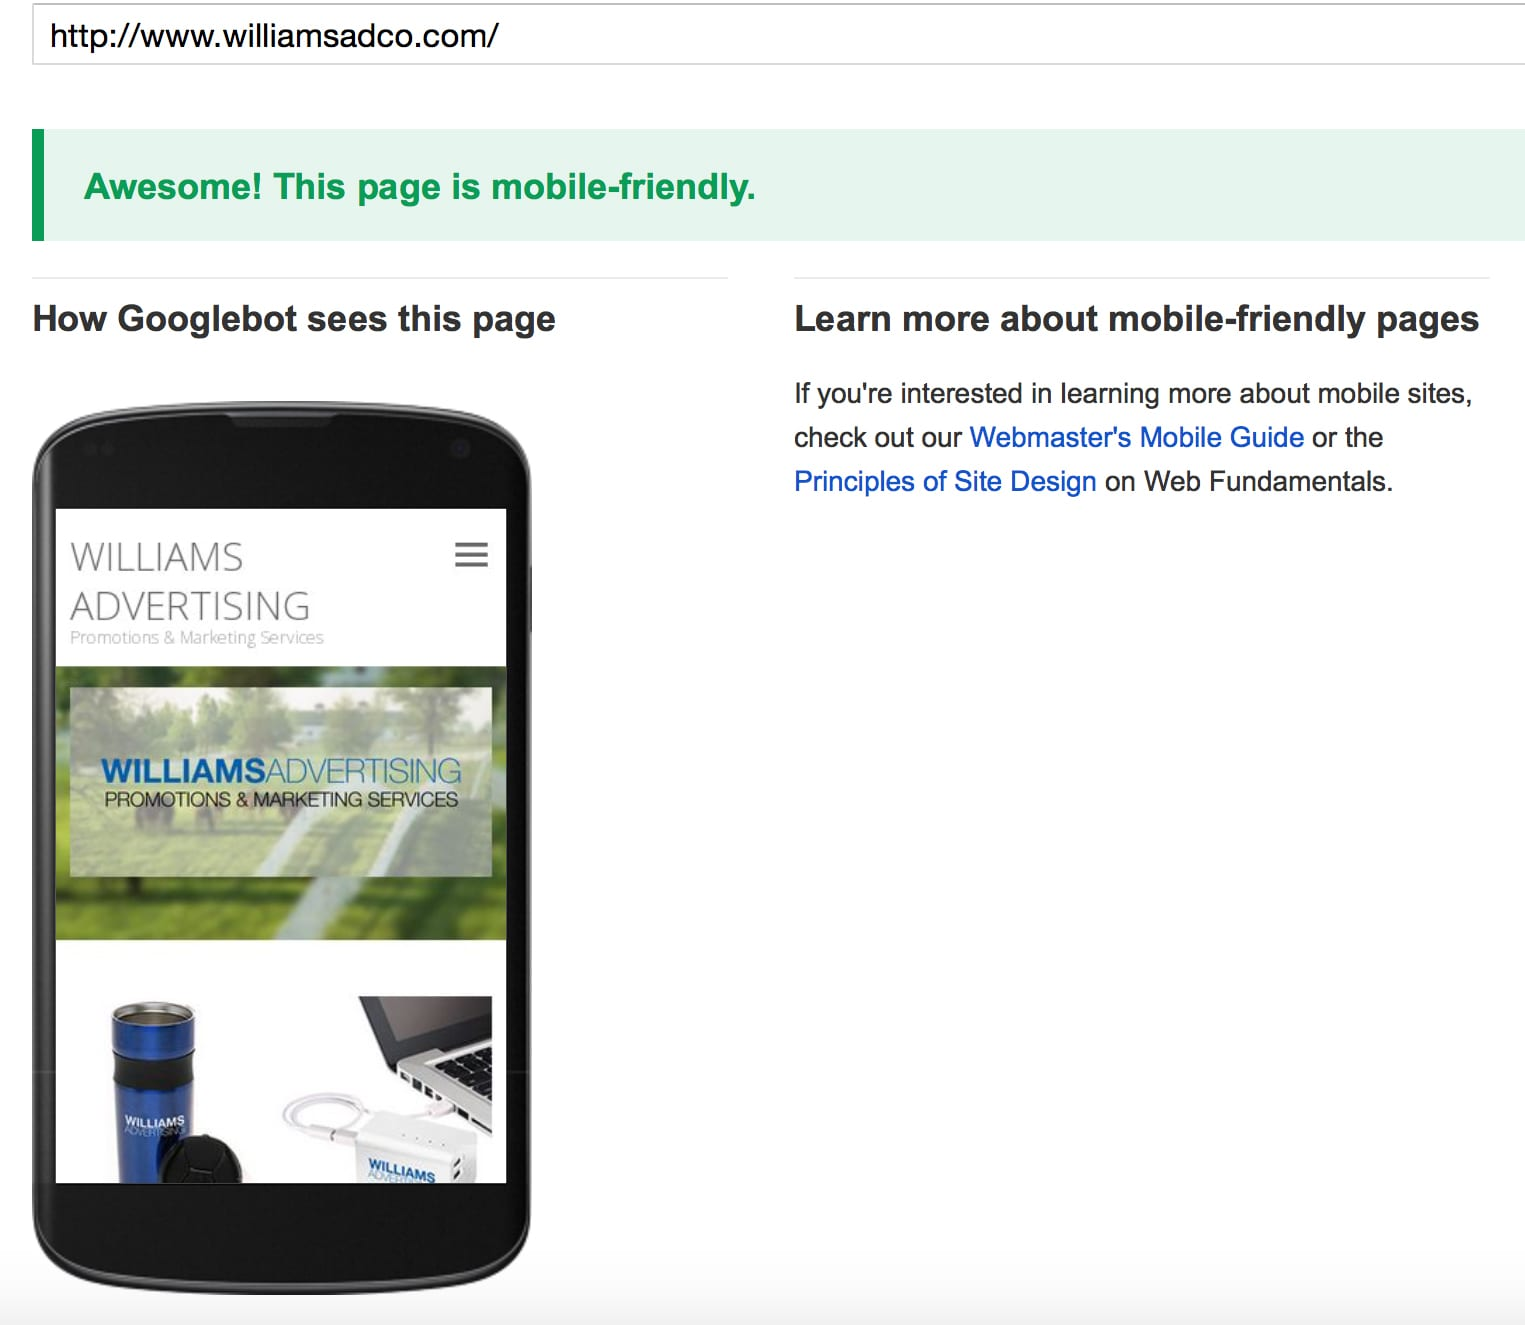 Williams Advertising Mobile Friendly Website